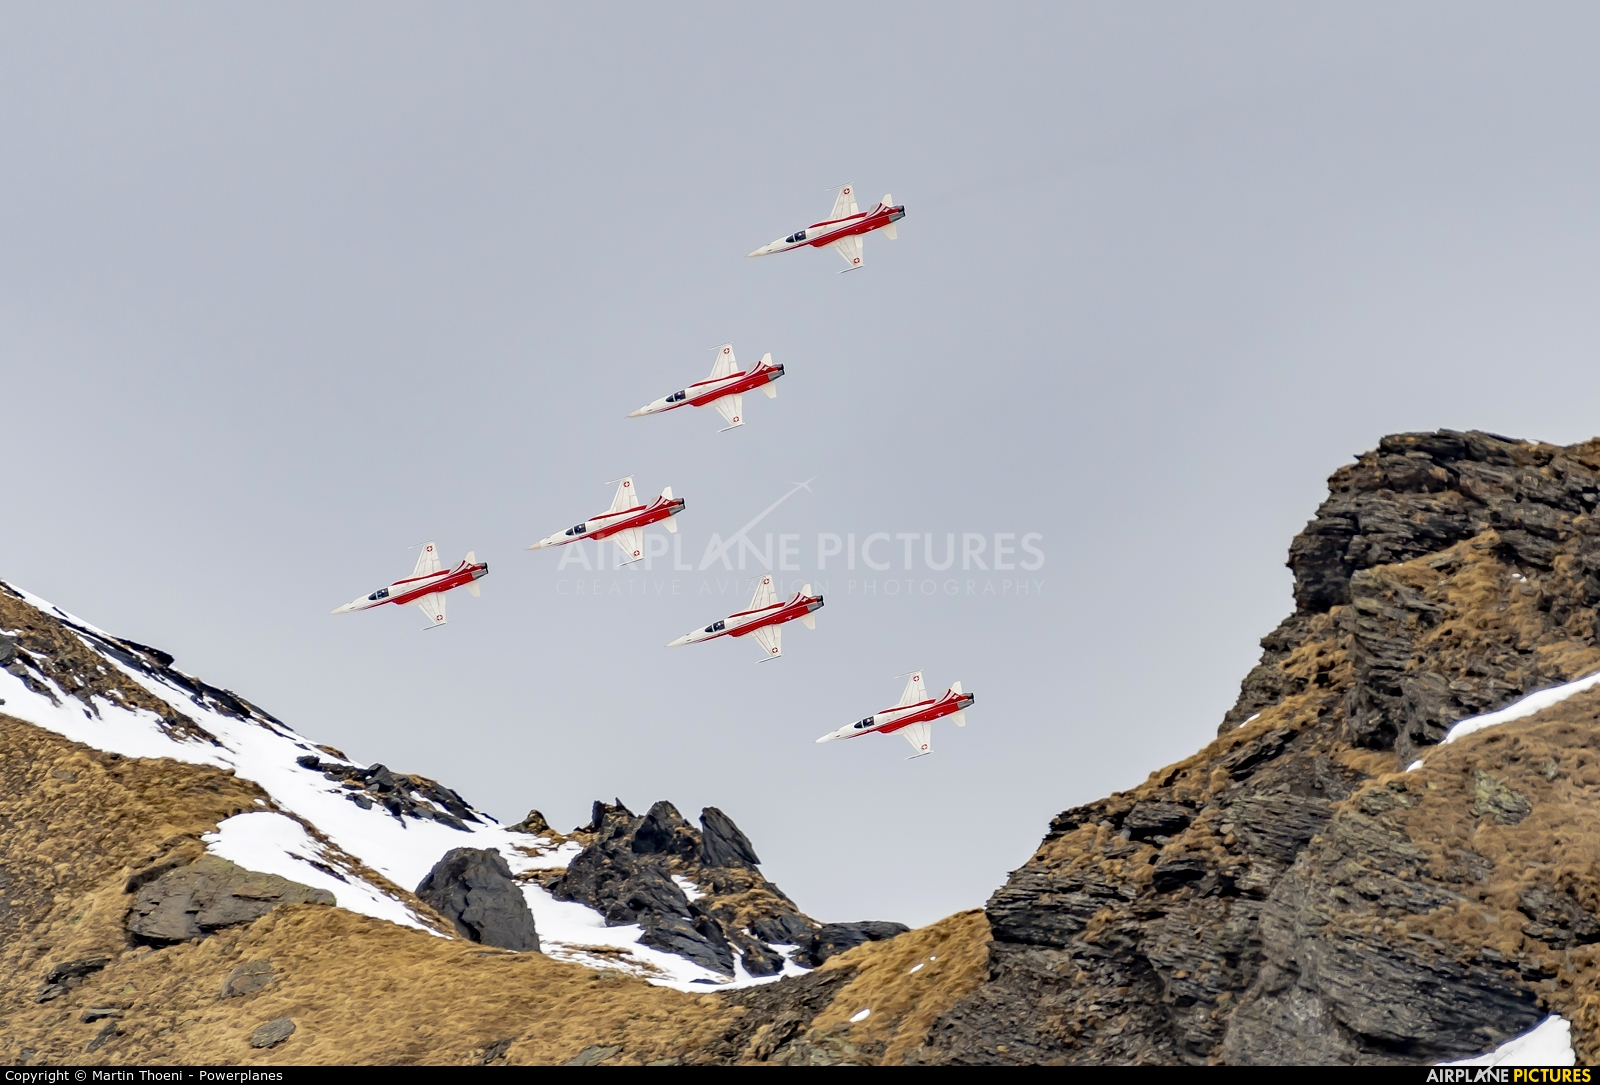 Switzerland - Air Force: Patrouille Suisse J-3090 aircraft at Lauberhorn